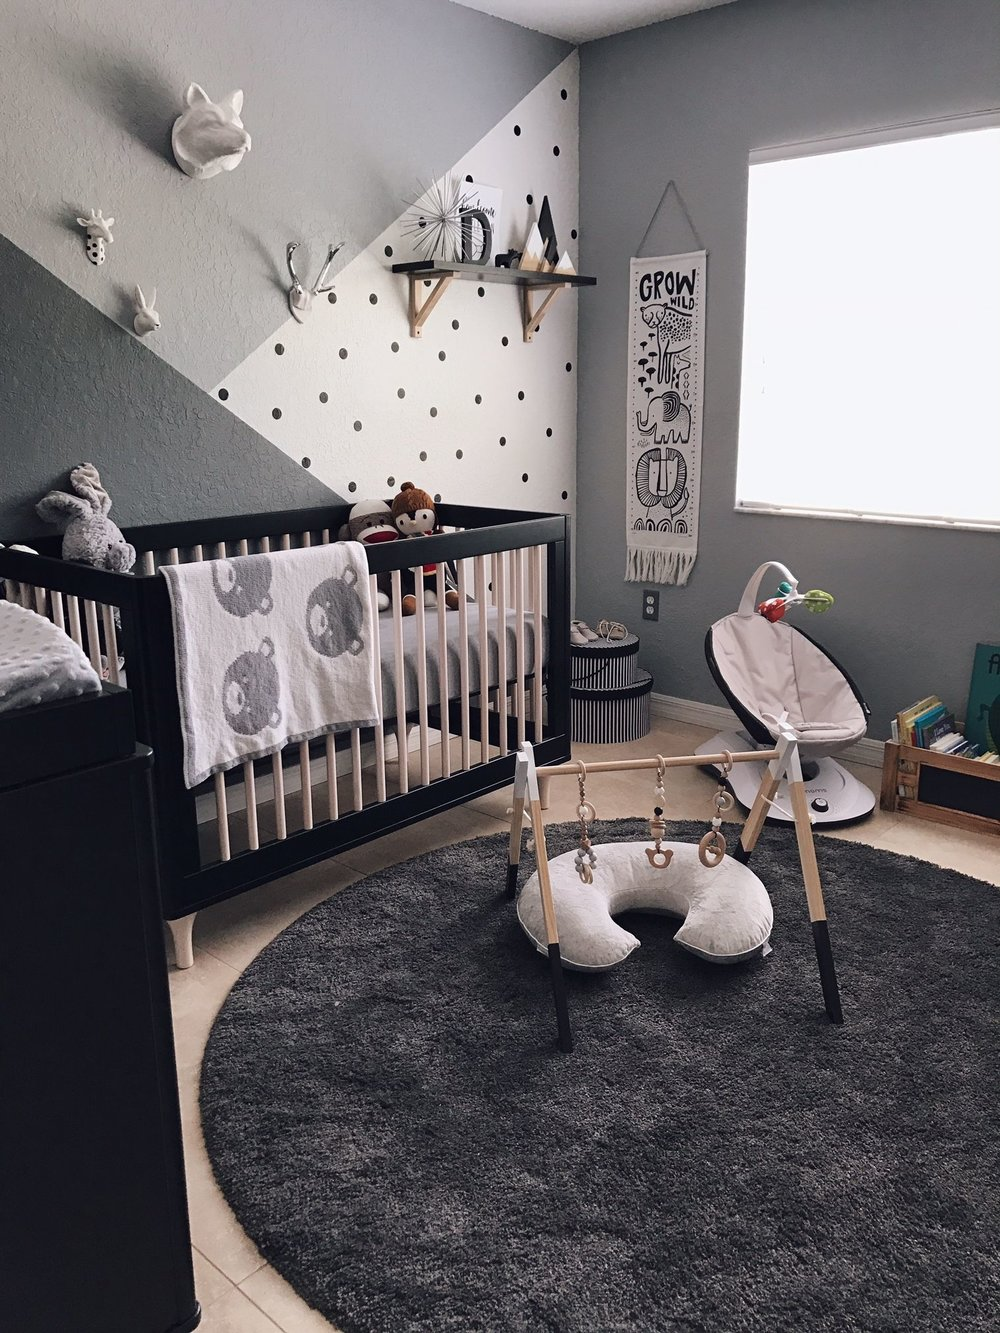 ART GROUP BABY - ROOM IDEAS